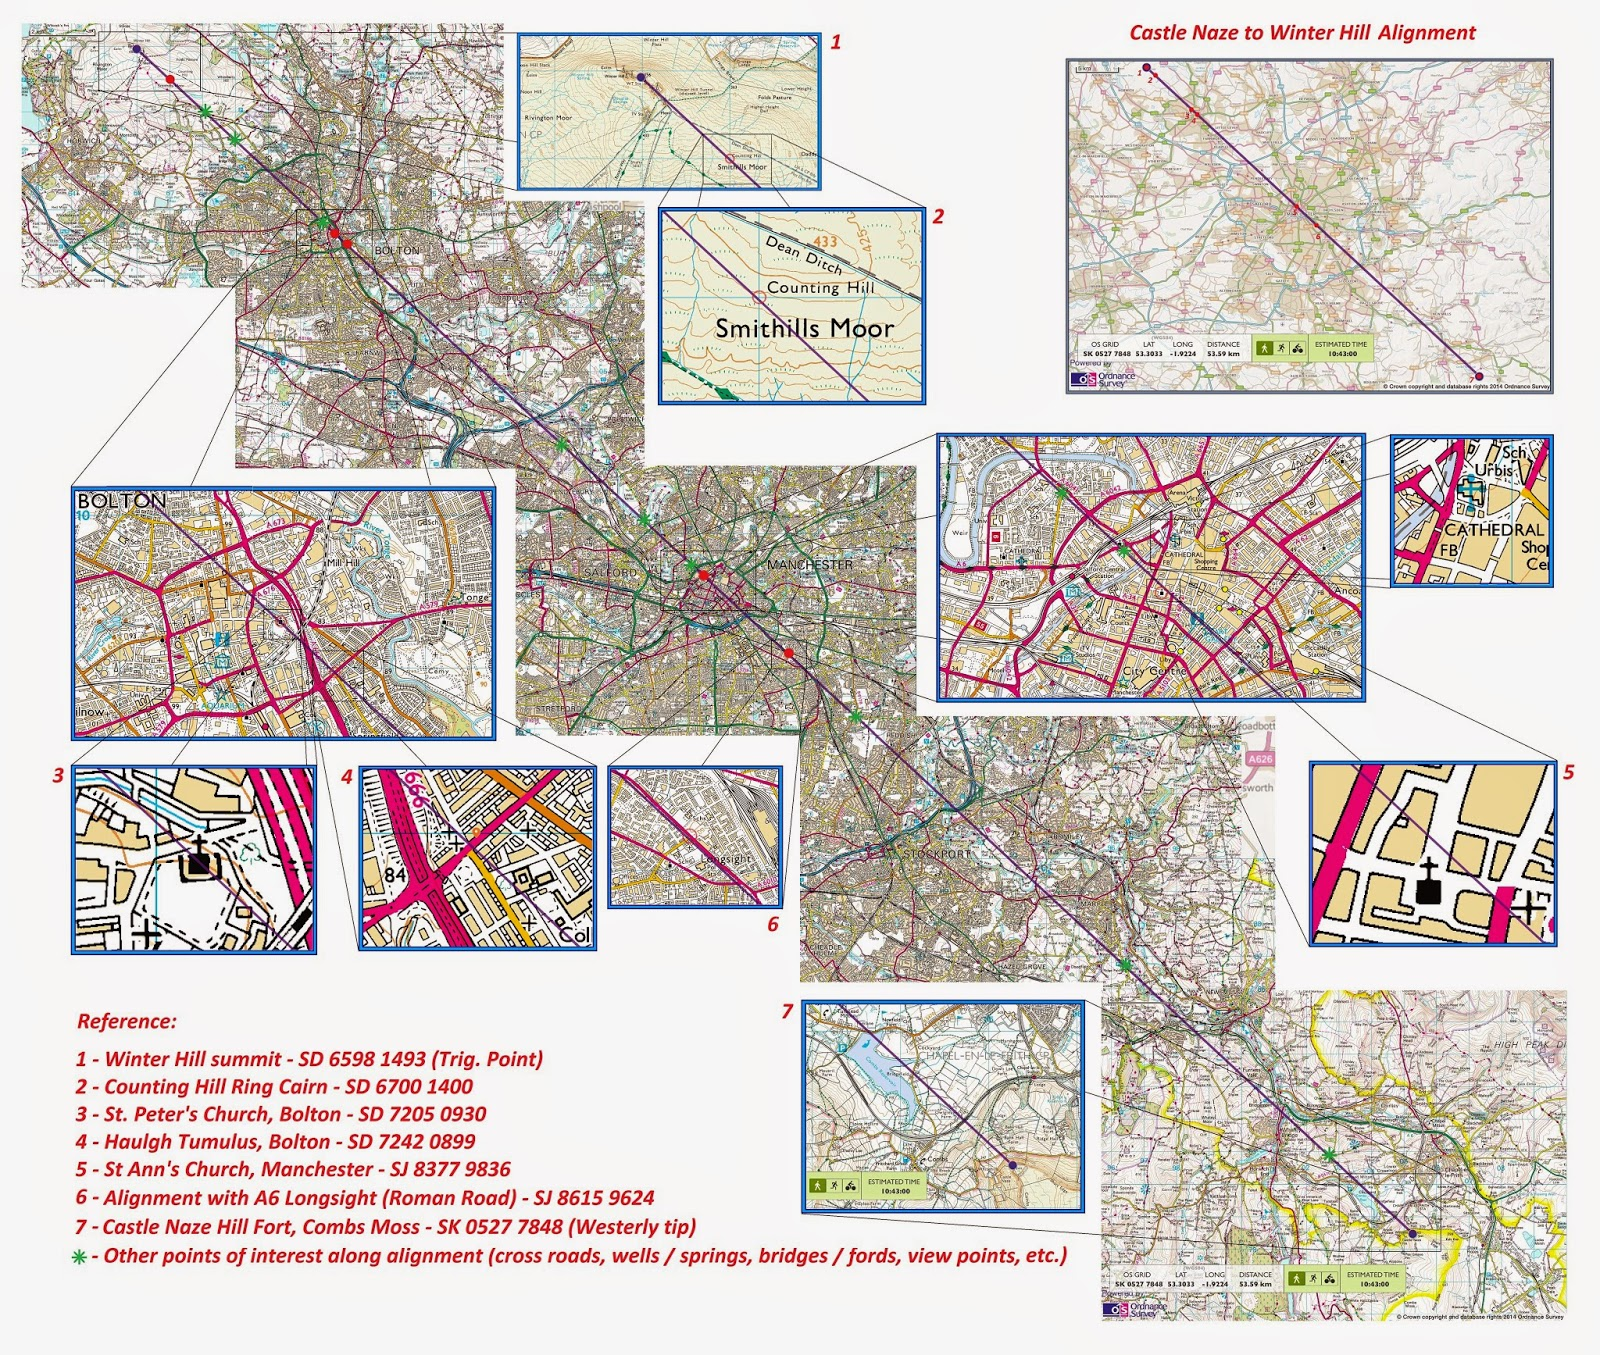 winter hill to castle naze alignment map 53 53 km source ordnance survey click for detail large file size